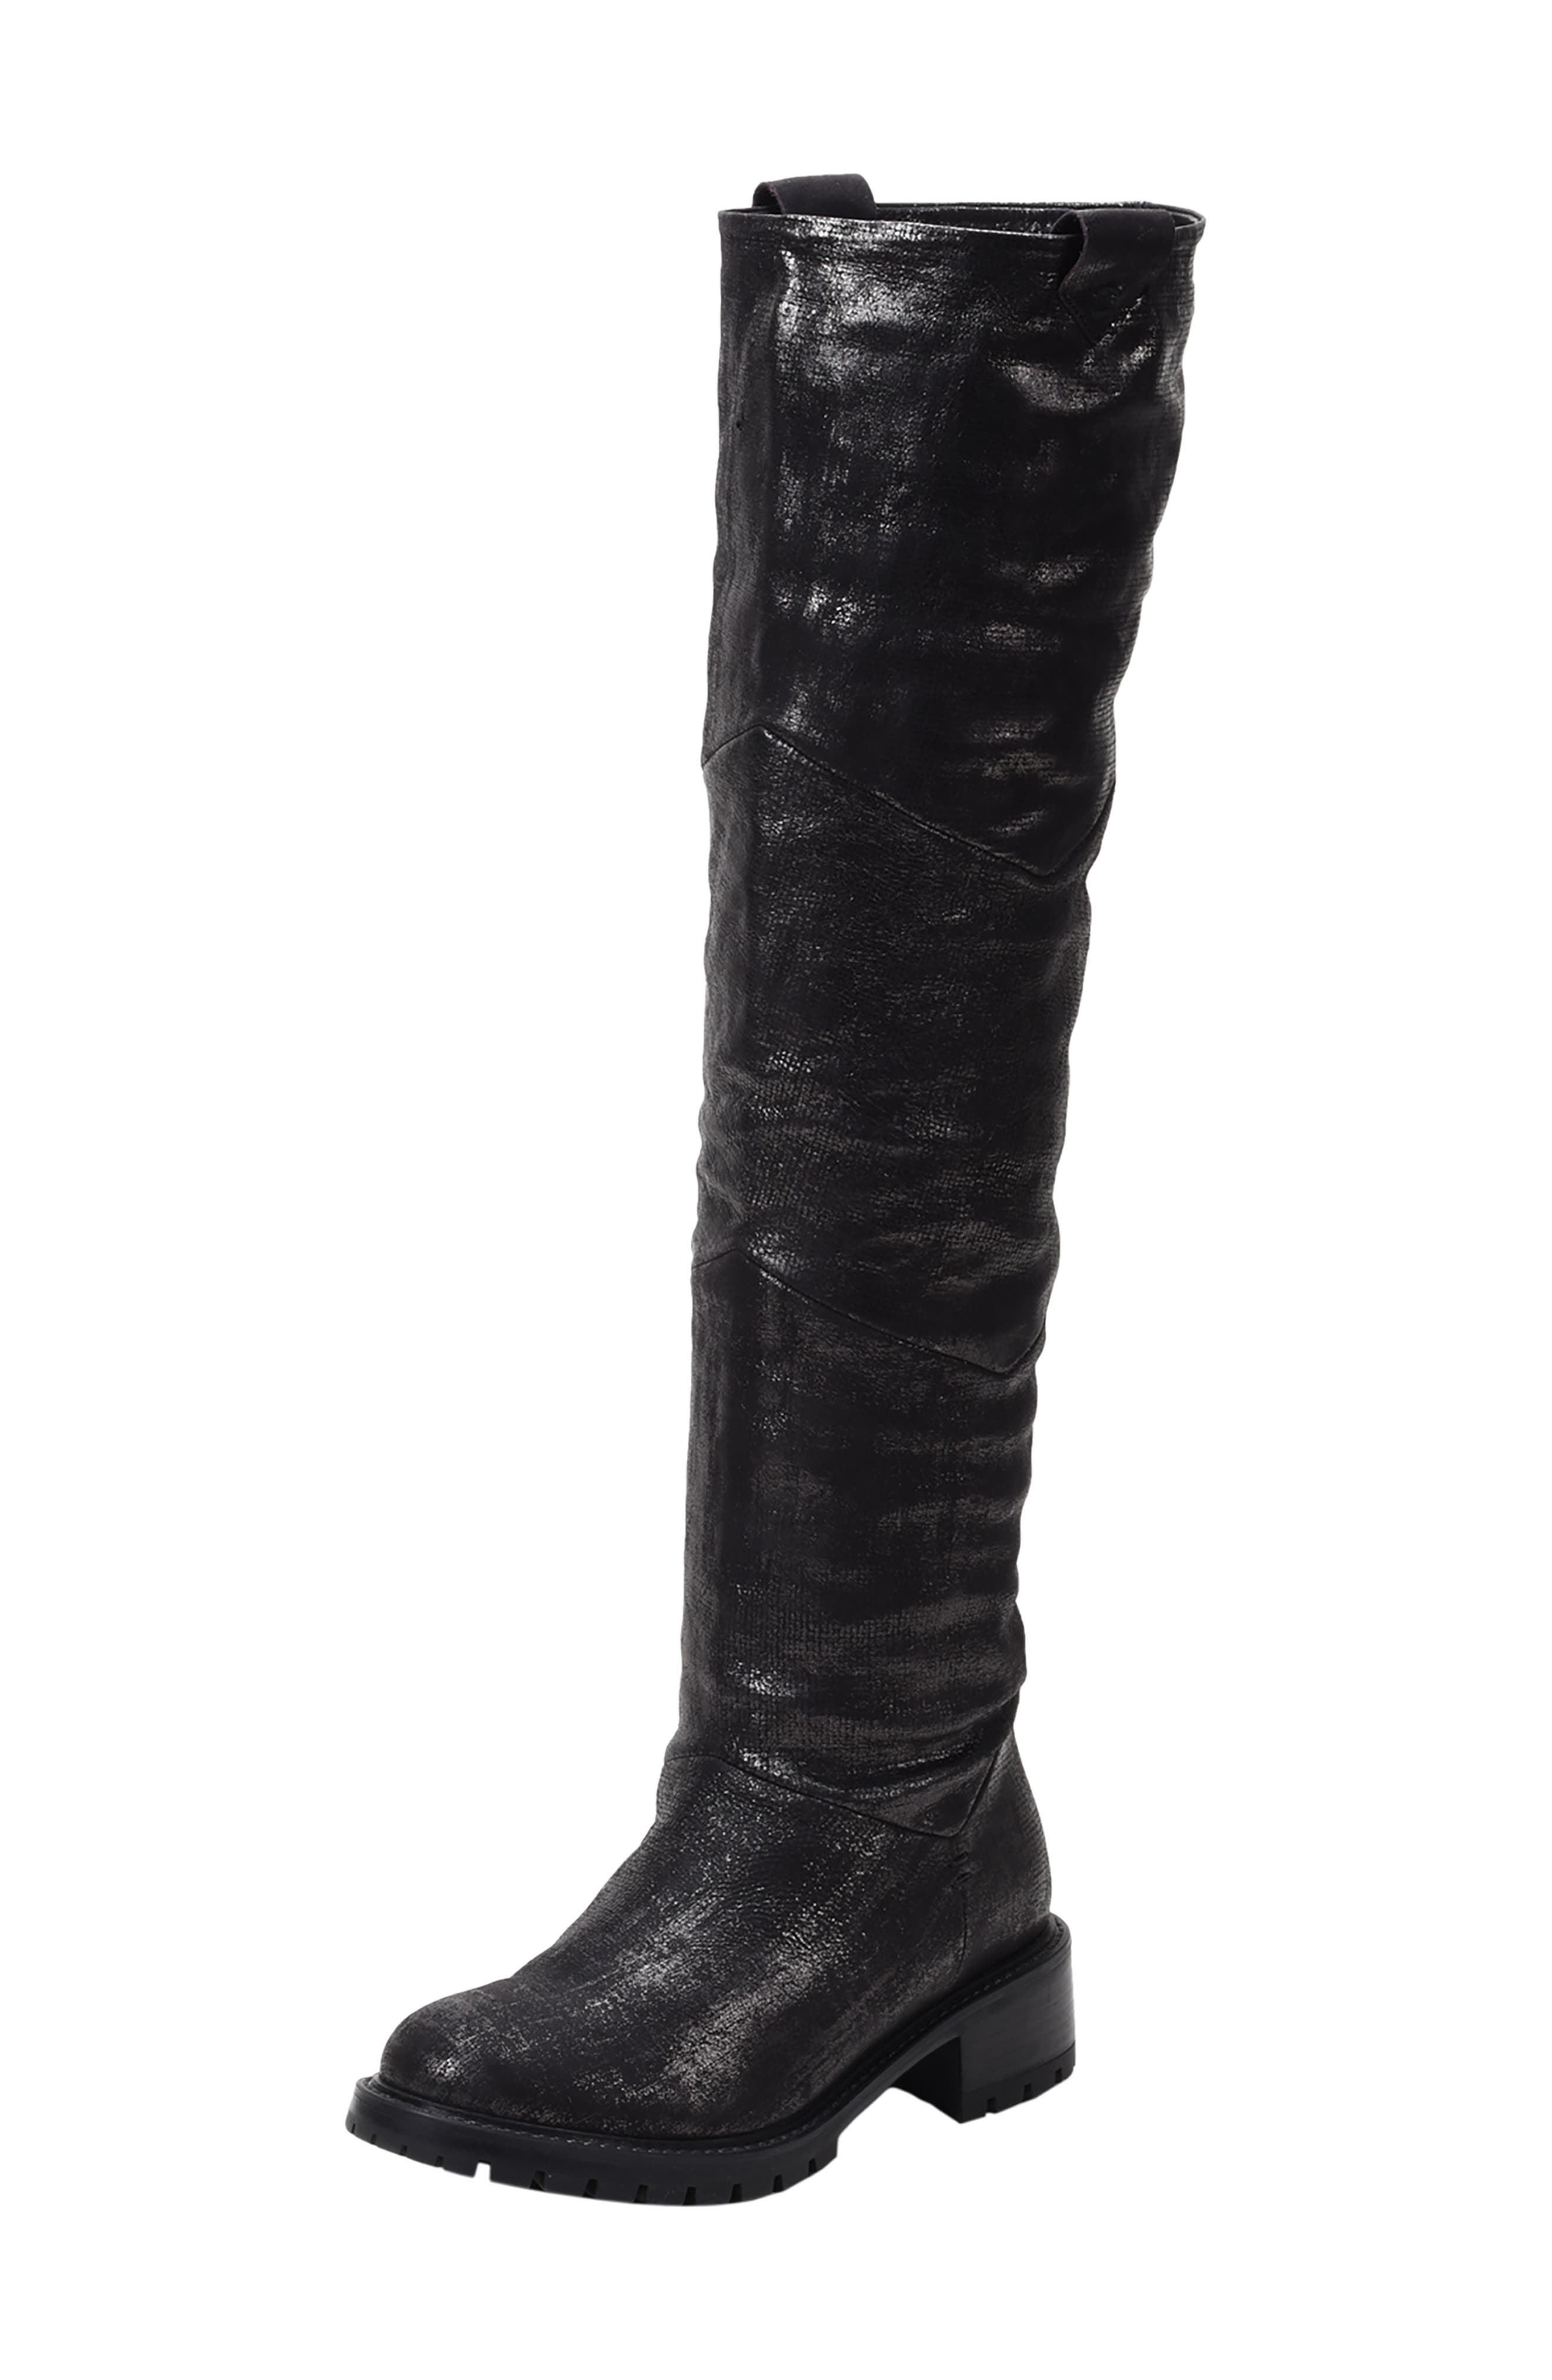 Elena Waterproof Genuine Shearling Lined Knee High Boot,                             Main thumbnail 1, color,                             BLACK/ SILVER LEATHER